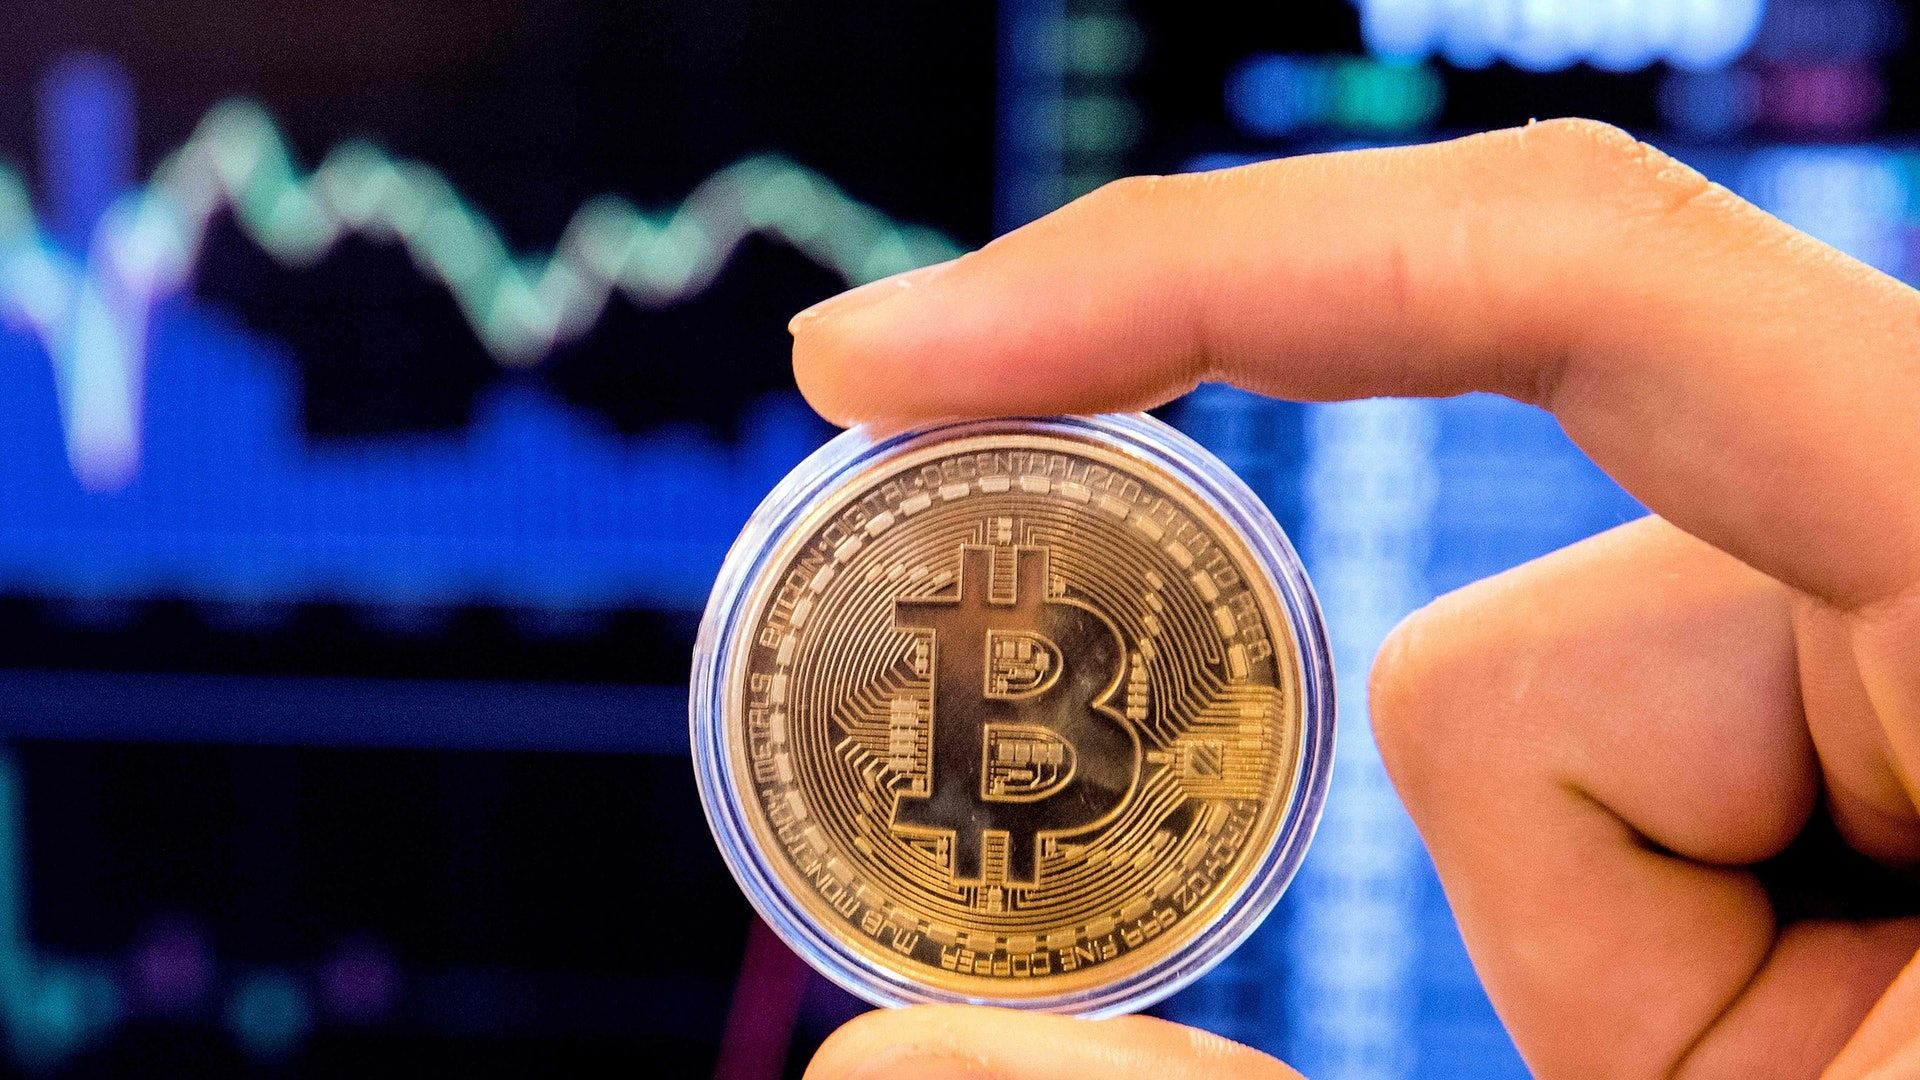 Get Secure Payment With Bitcoin Bitcoin price, Bitcoin